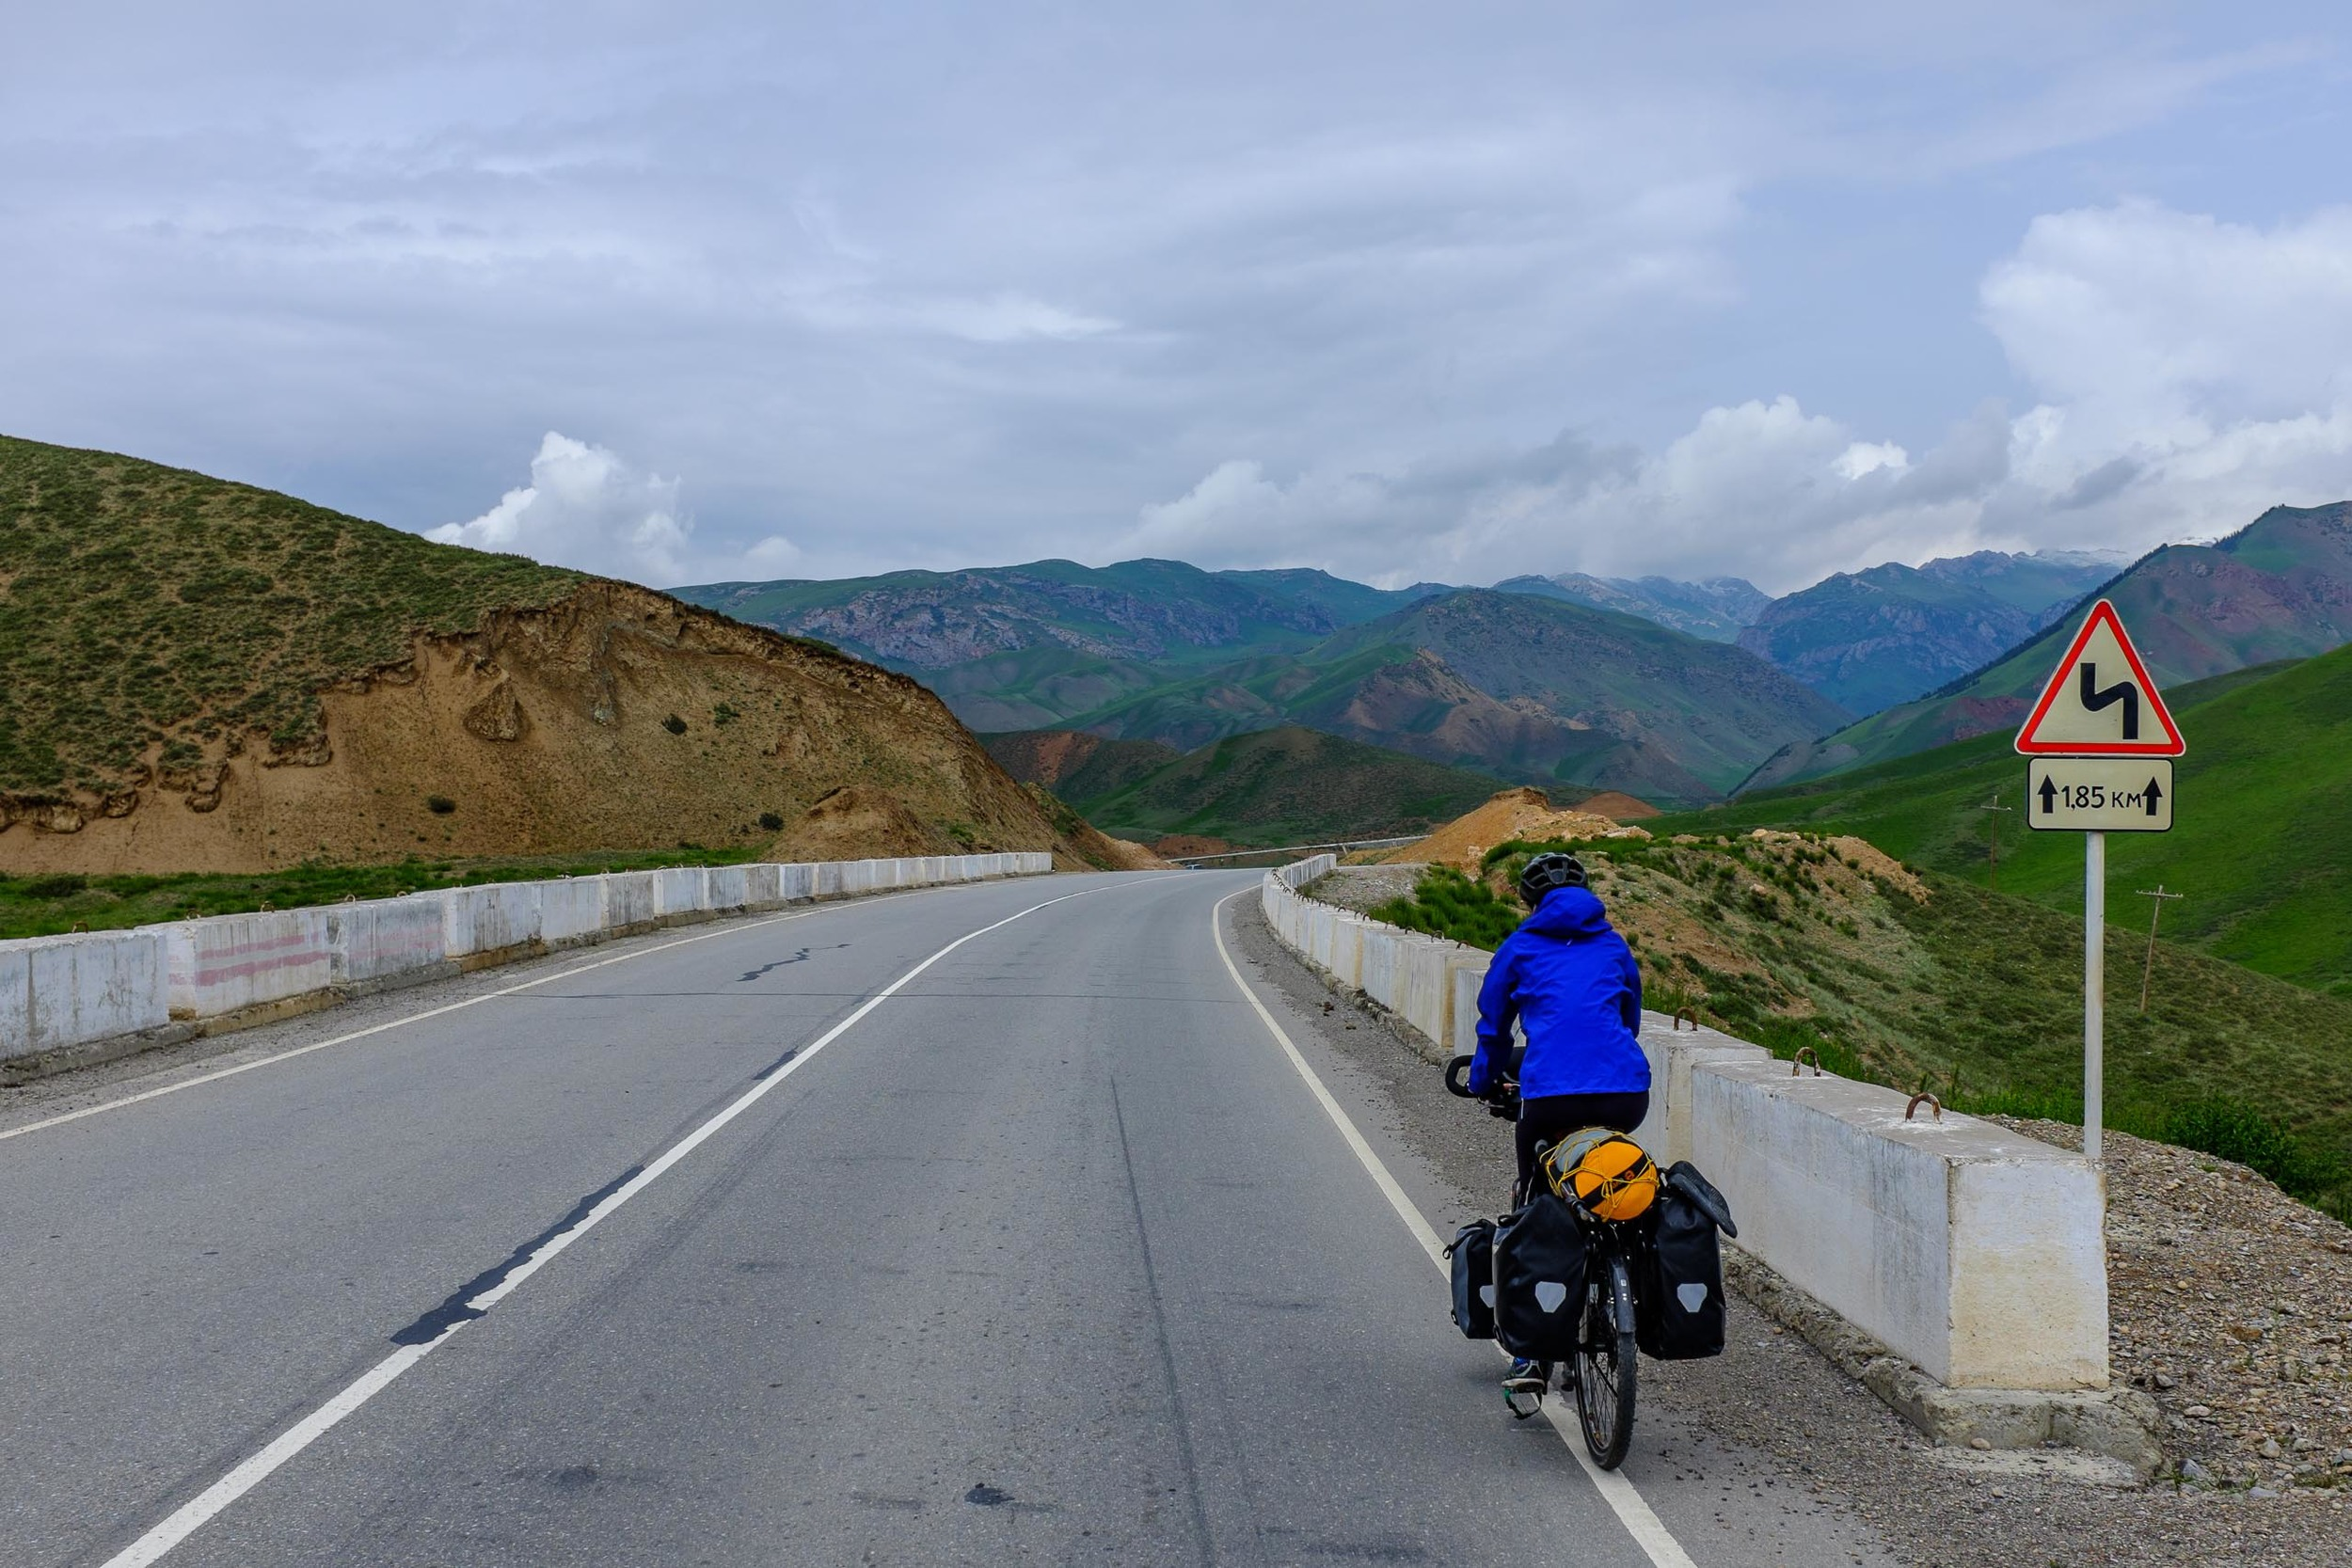 Riding up to the 2600 m (8,530 ft) pass between At-Bashy and Naryn